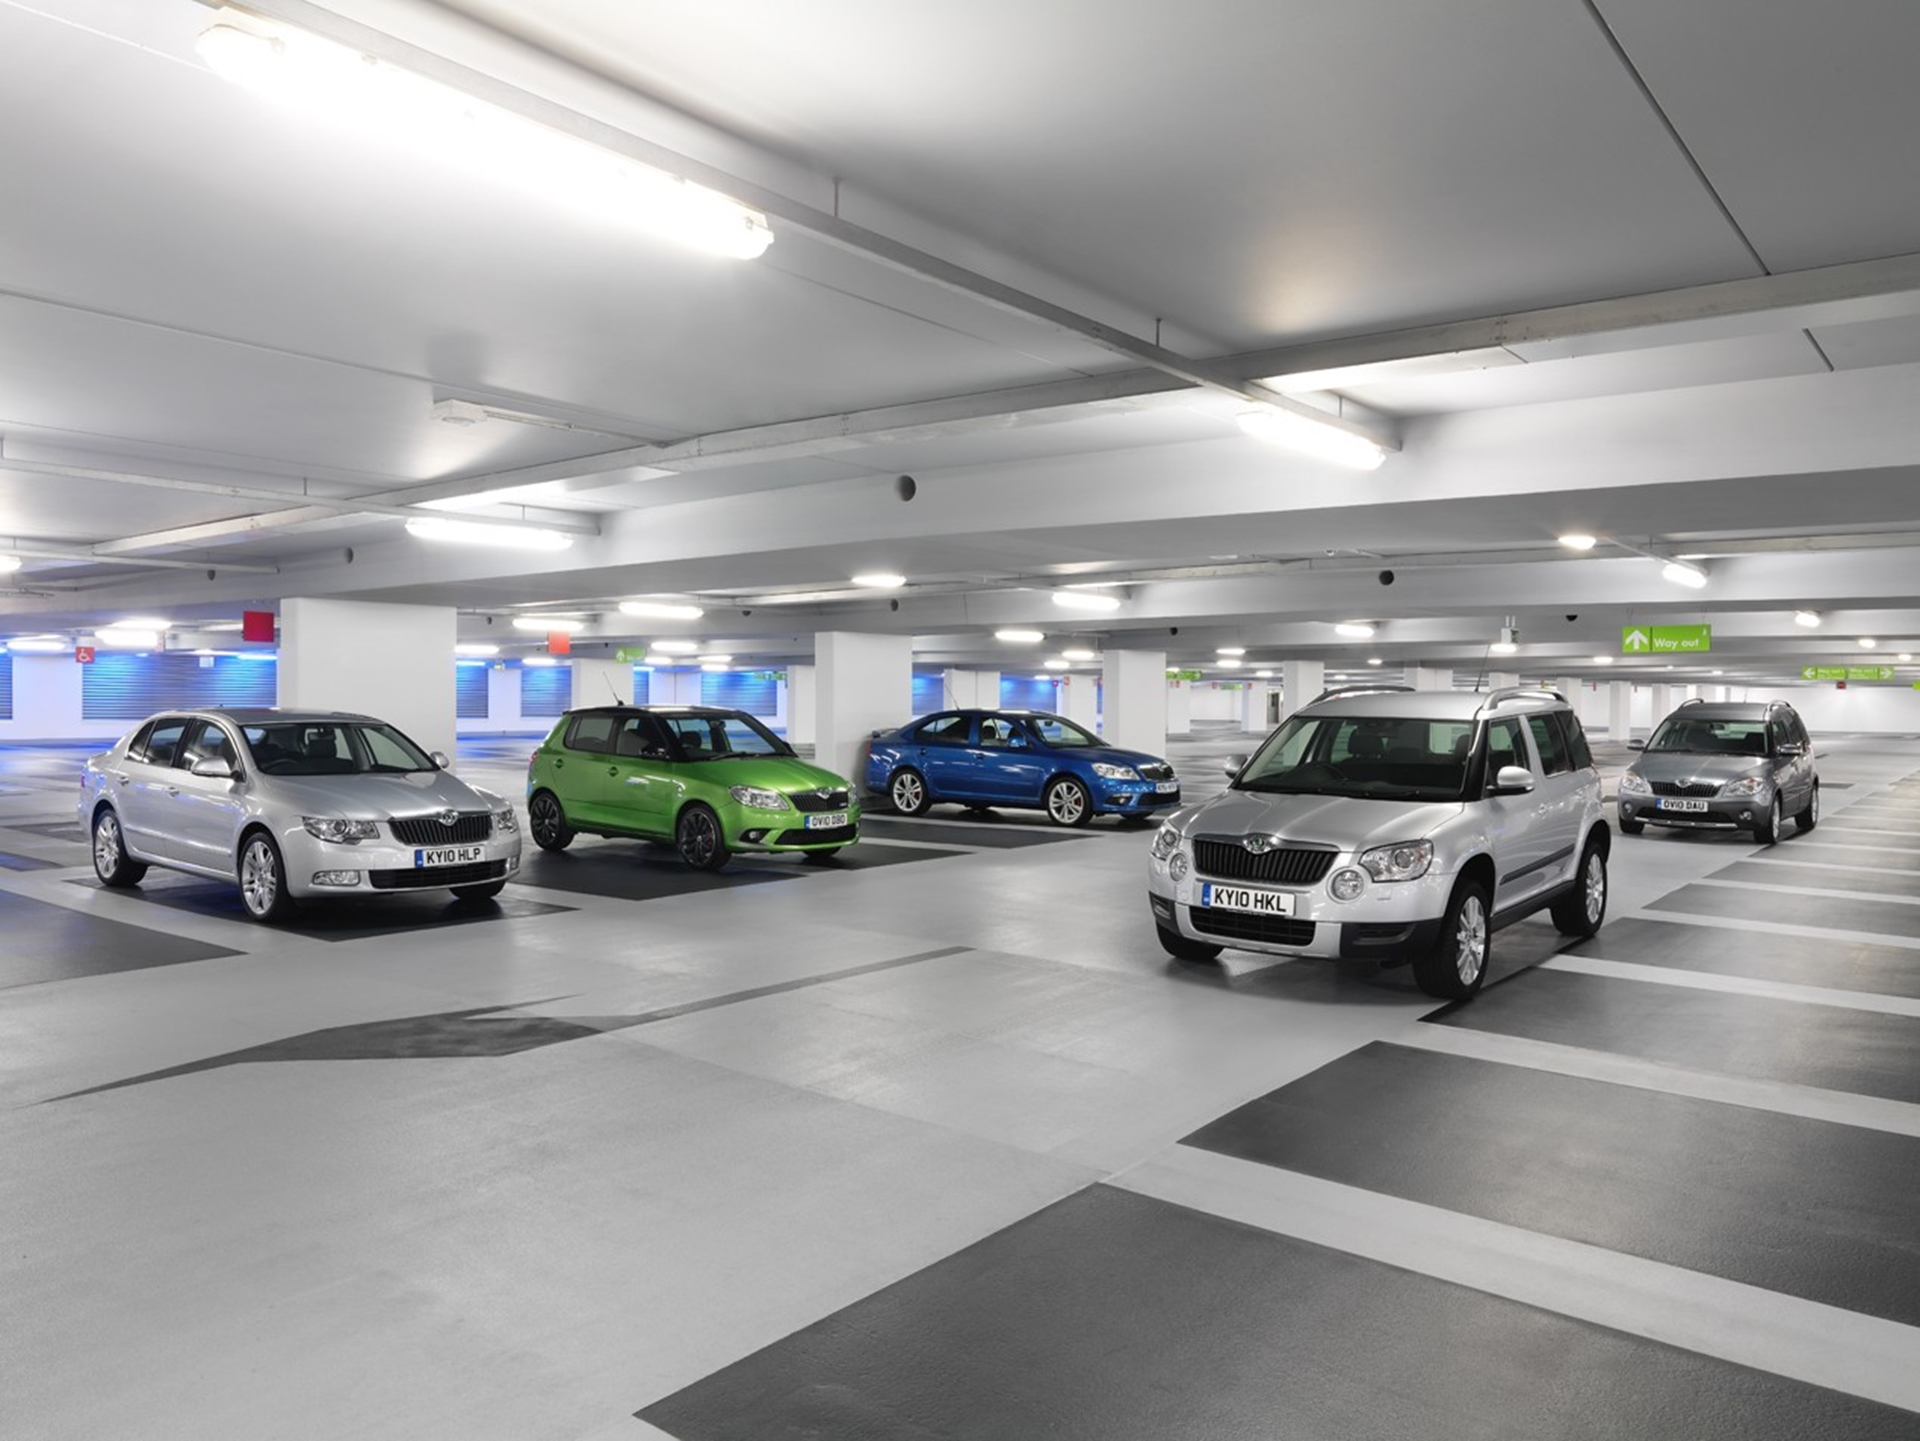 SKODA CONTINUES ITS DOUBLE-DIGIT WORLDWIDE GROWTH